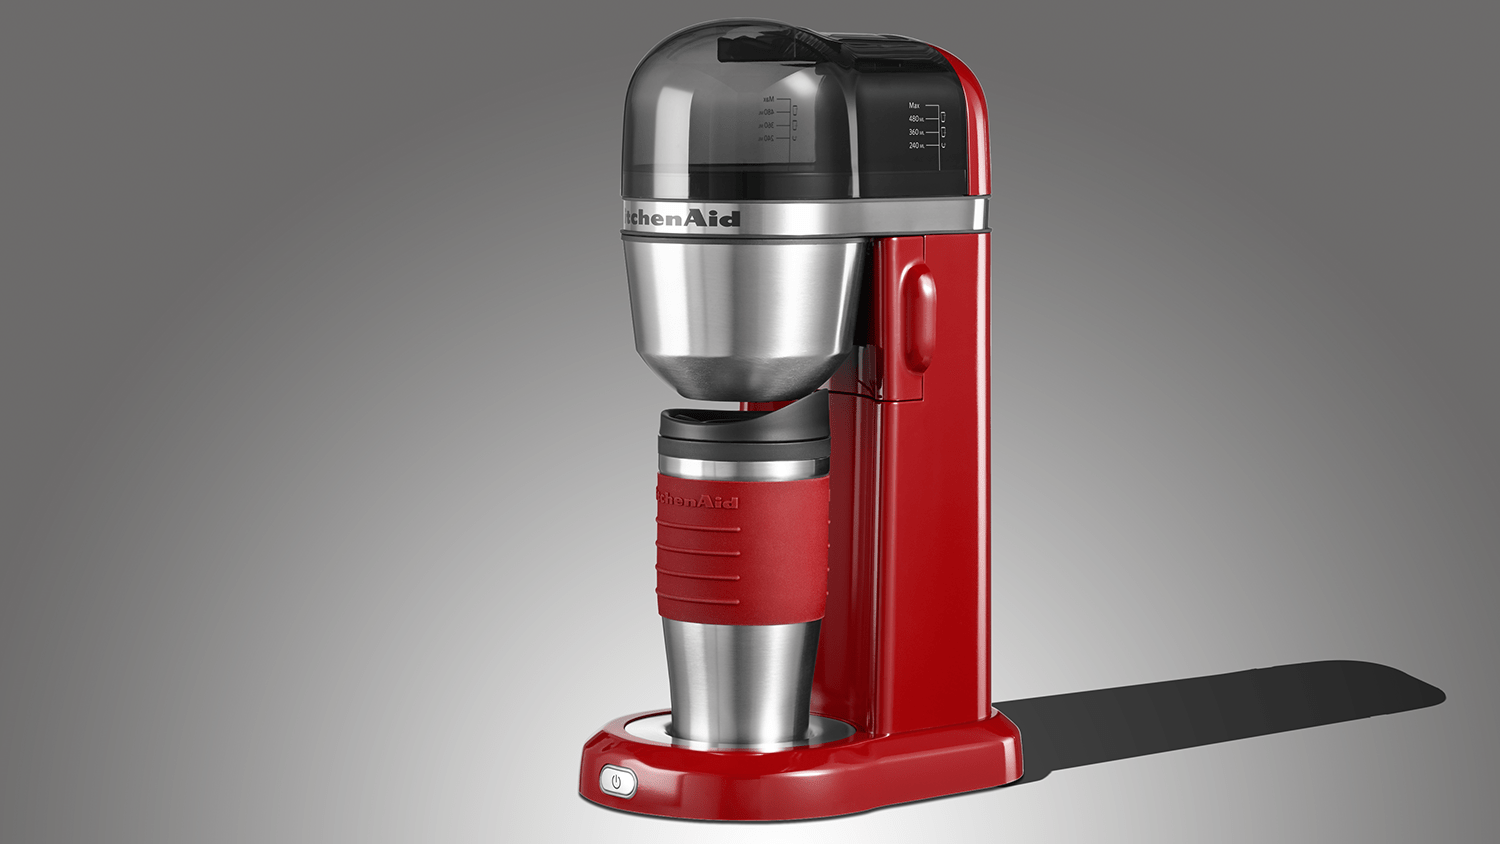 Kitchenaid Kaffeemaschine To Go Kitchenaid Personal Coffee Maker Review Trusted Reviews